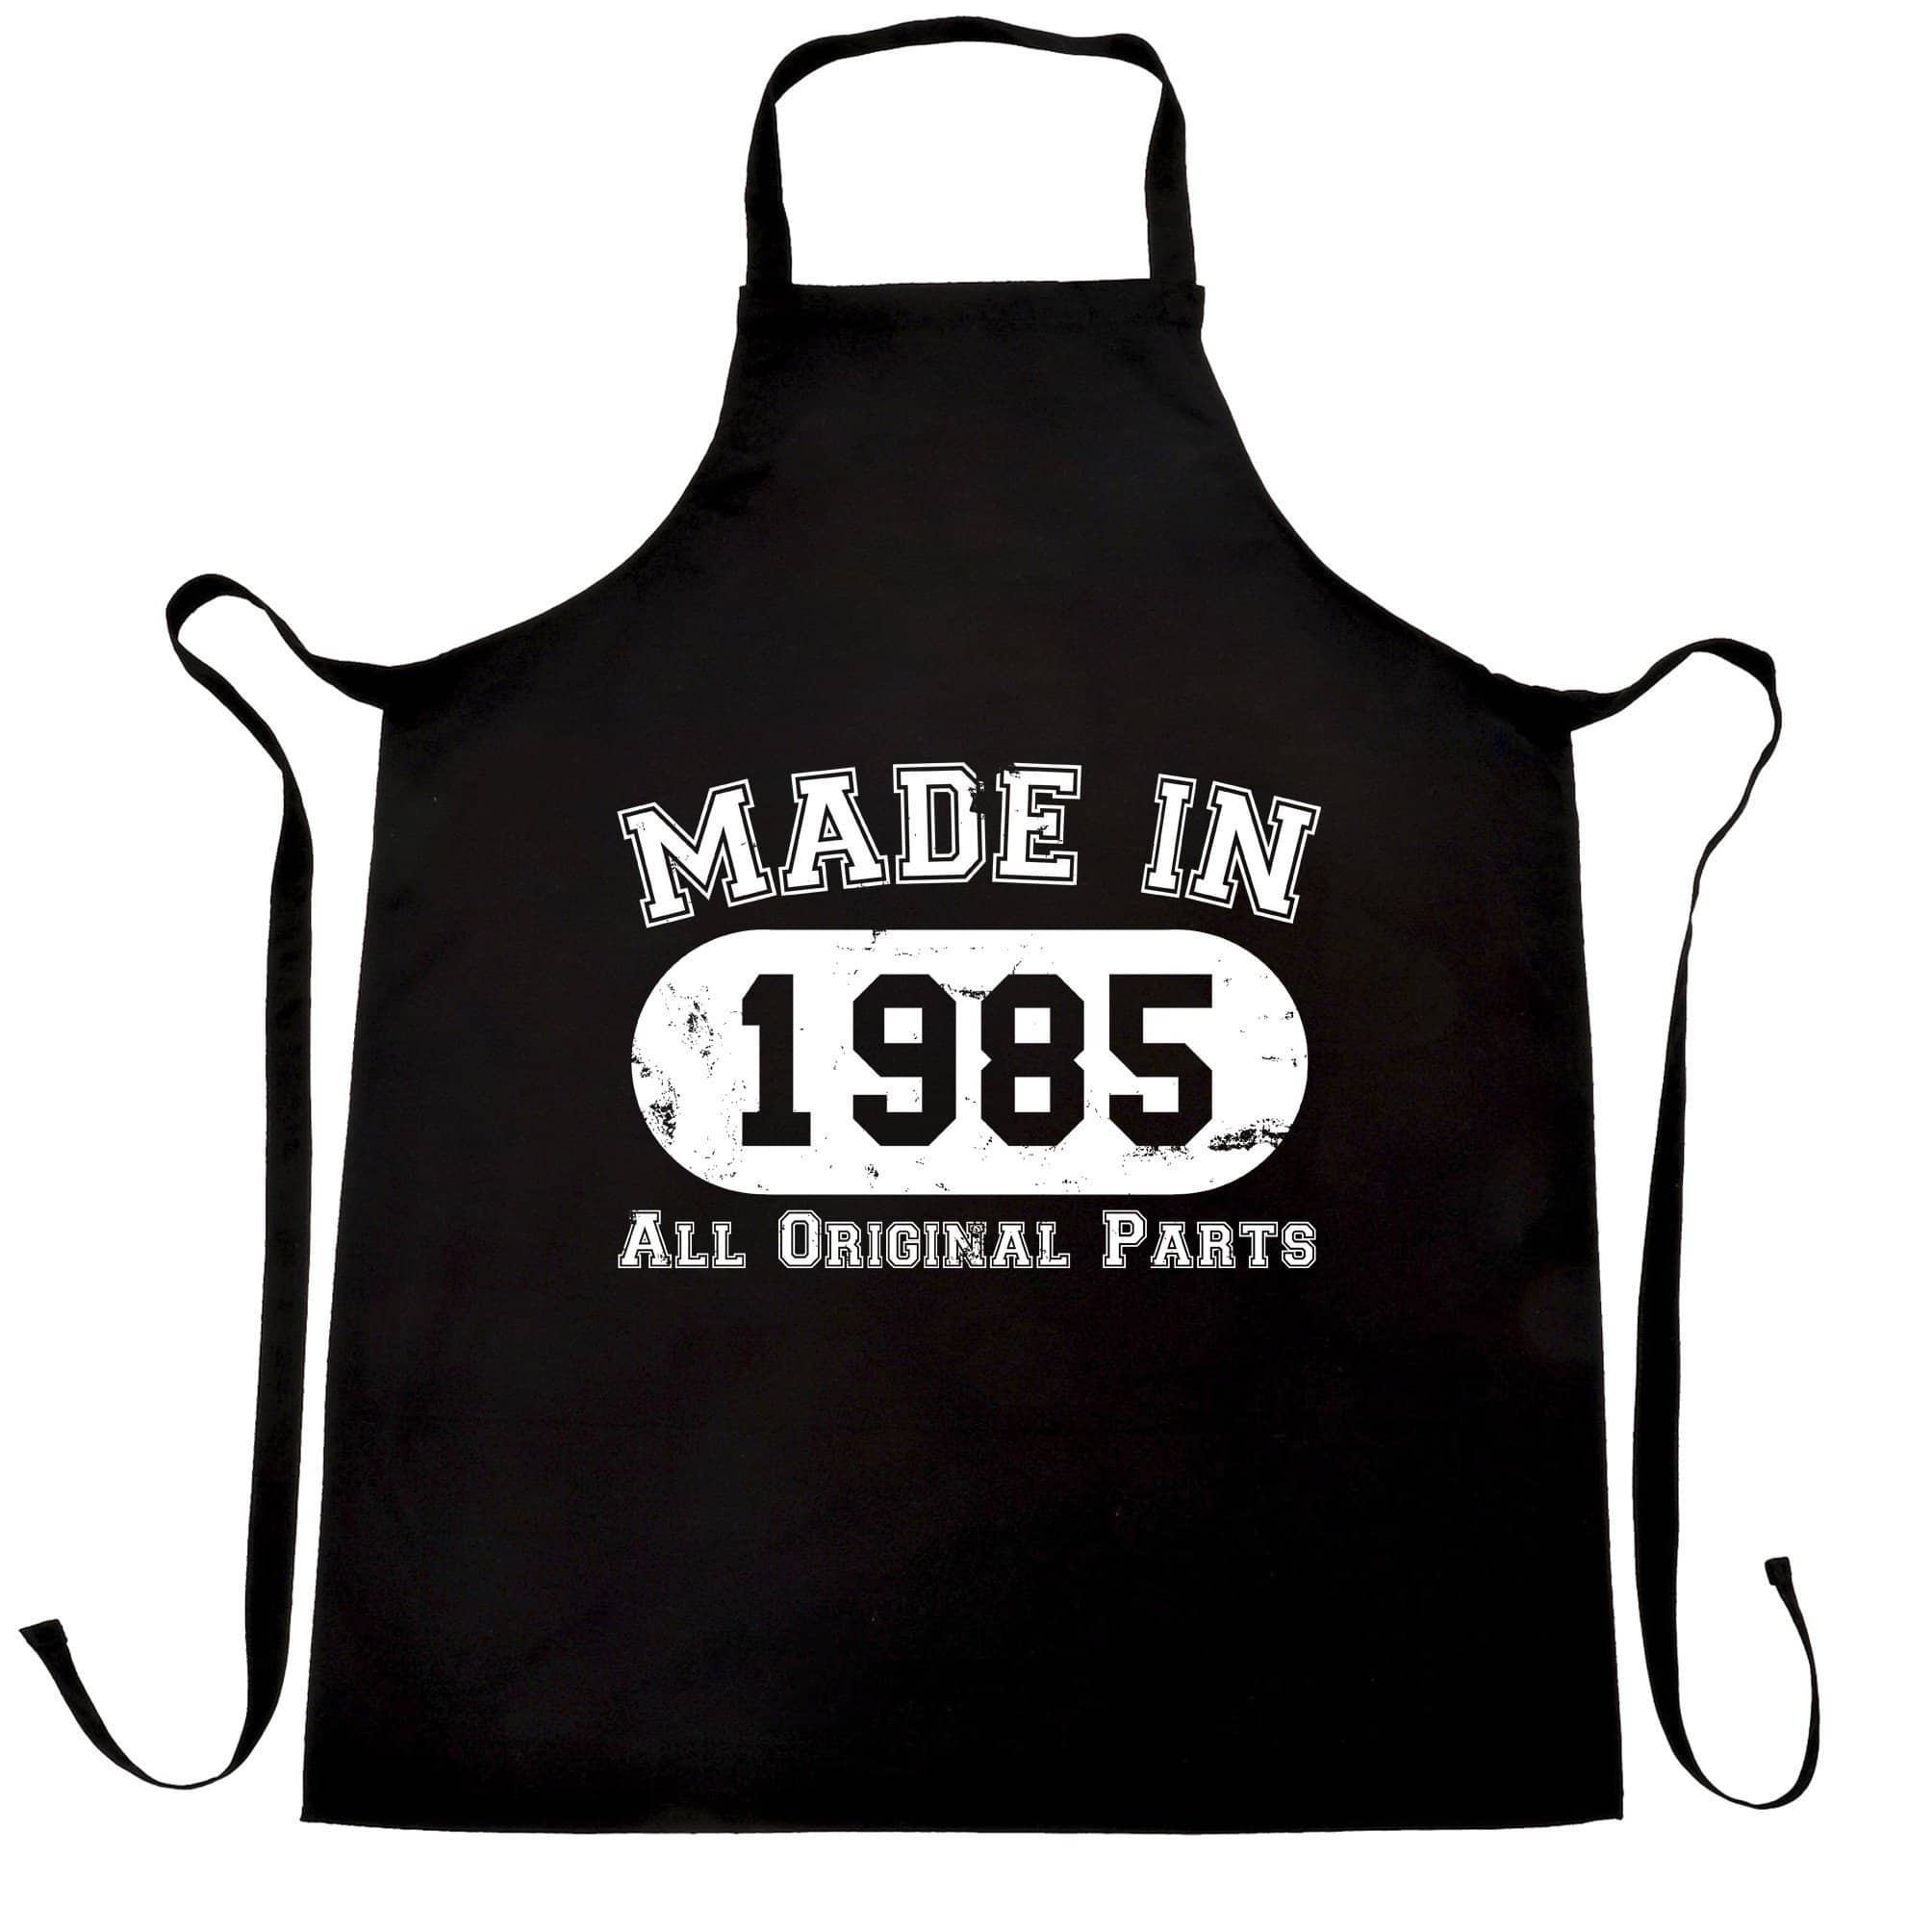 Made in 1985 All Original Parts Apron [Distressed]